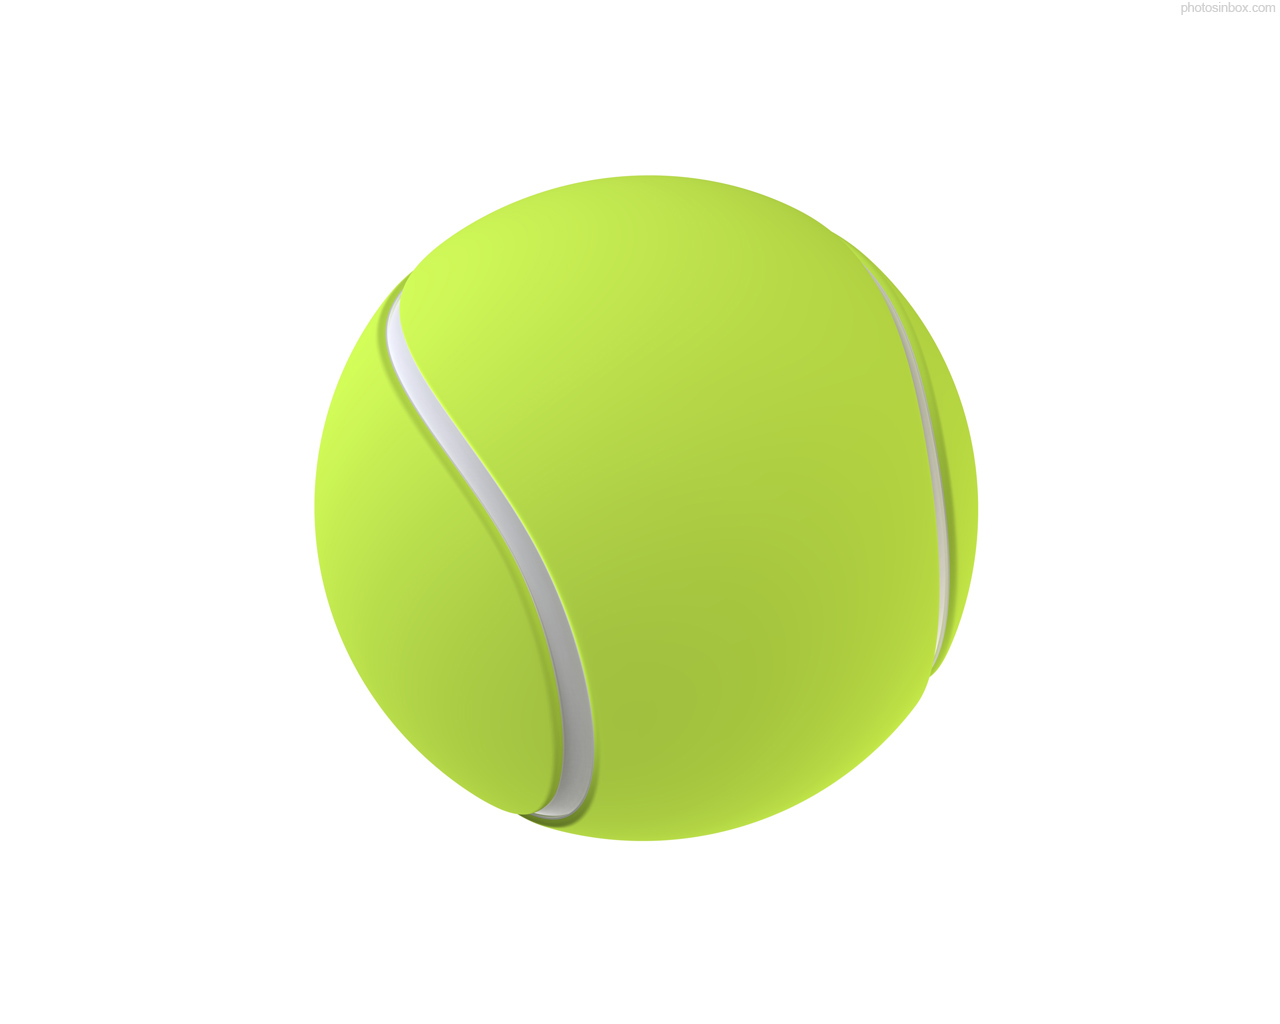 Tennis Ball Picture Clipart-Tennis ball picture clipart-15